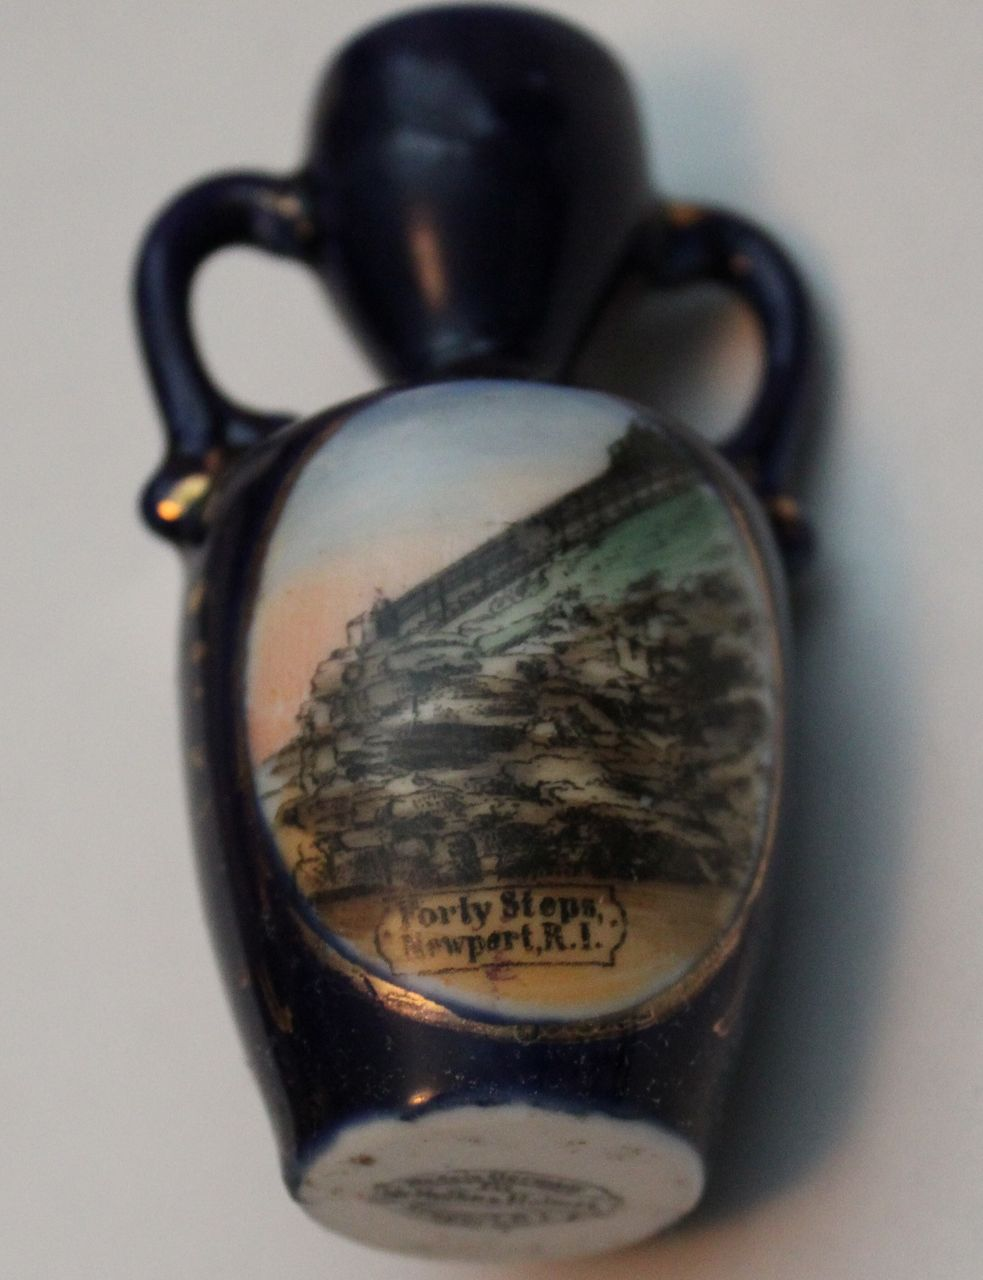 China souvenir of the Forty Steps in New York